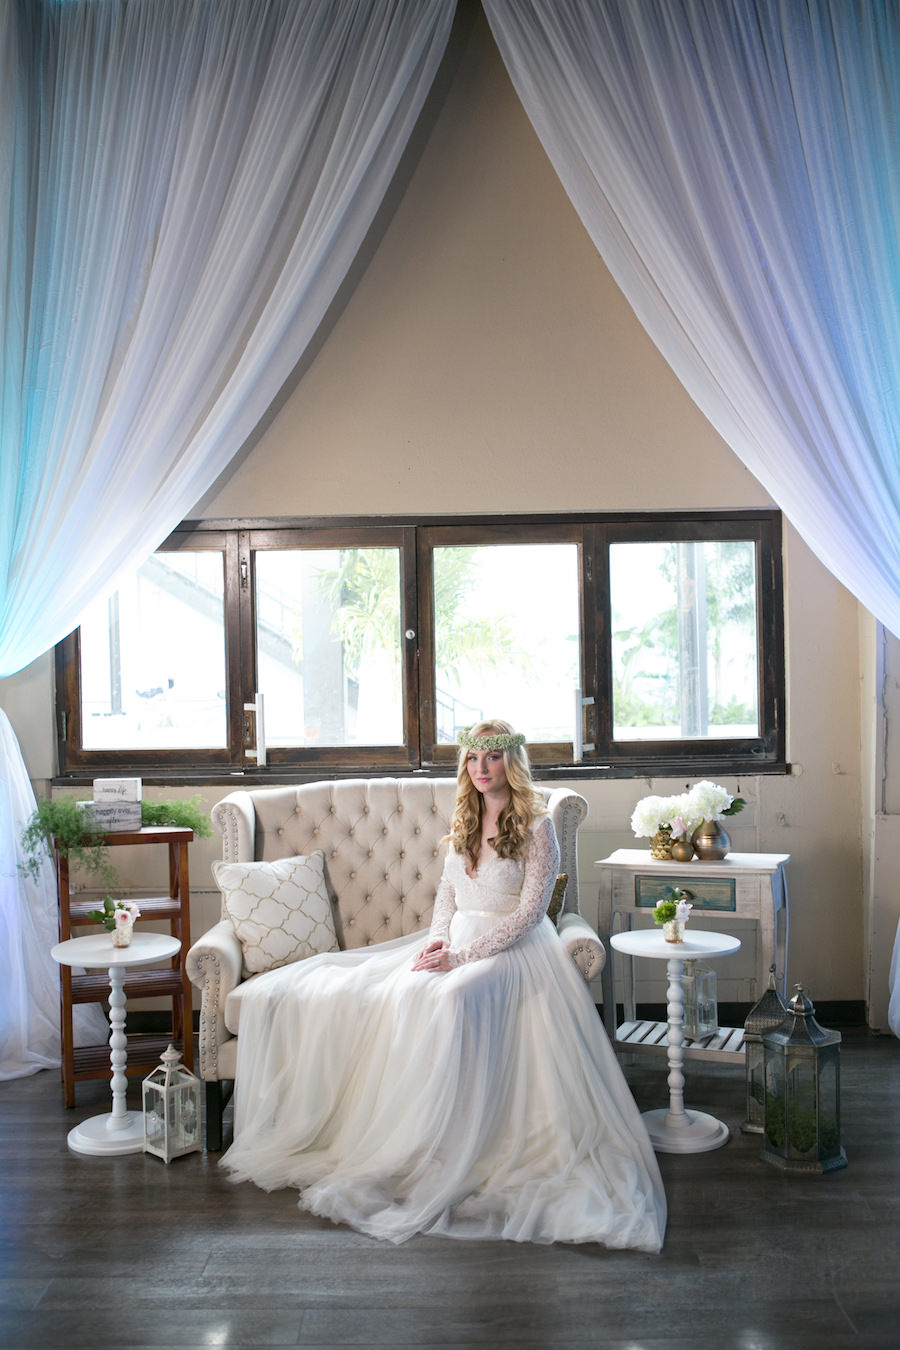 Vintage Tufted Upholstered Couch and Furniture with White Draping | Long Sleeved Lace Wedding Dress from the The Bride Tampa | Boho Wedding Reception Decor Ideas and Inspiration | Tampa Wedding Photographer Carrie Wildes Photography